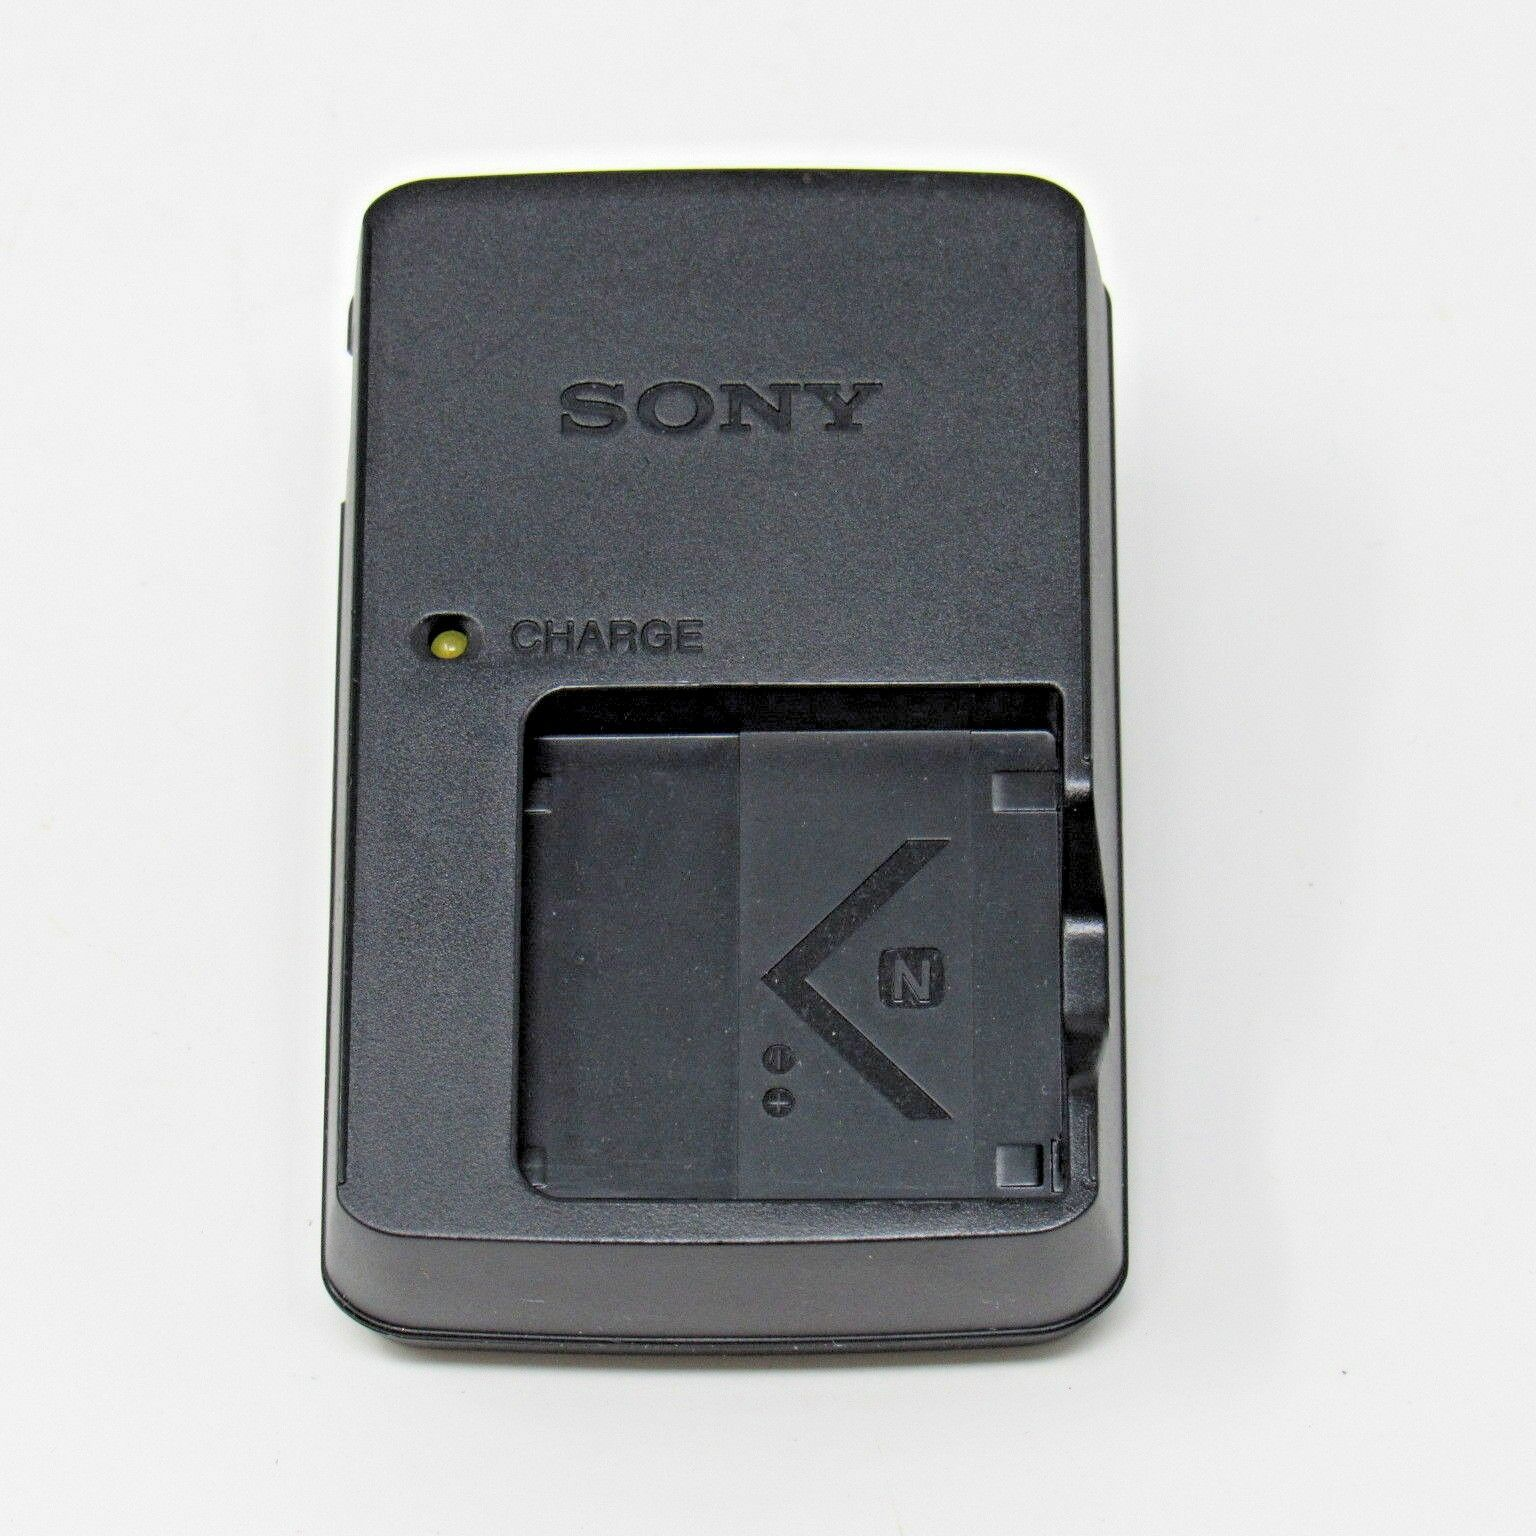 Sony BC-CSNB Wall Charger for Sony NP-BN1 NP-BN Camera Battery Genuine OEM  image 7